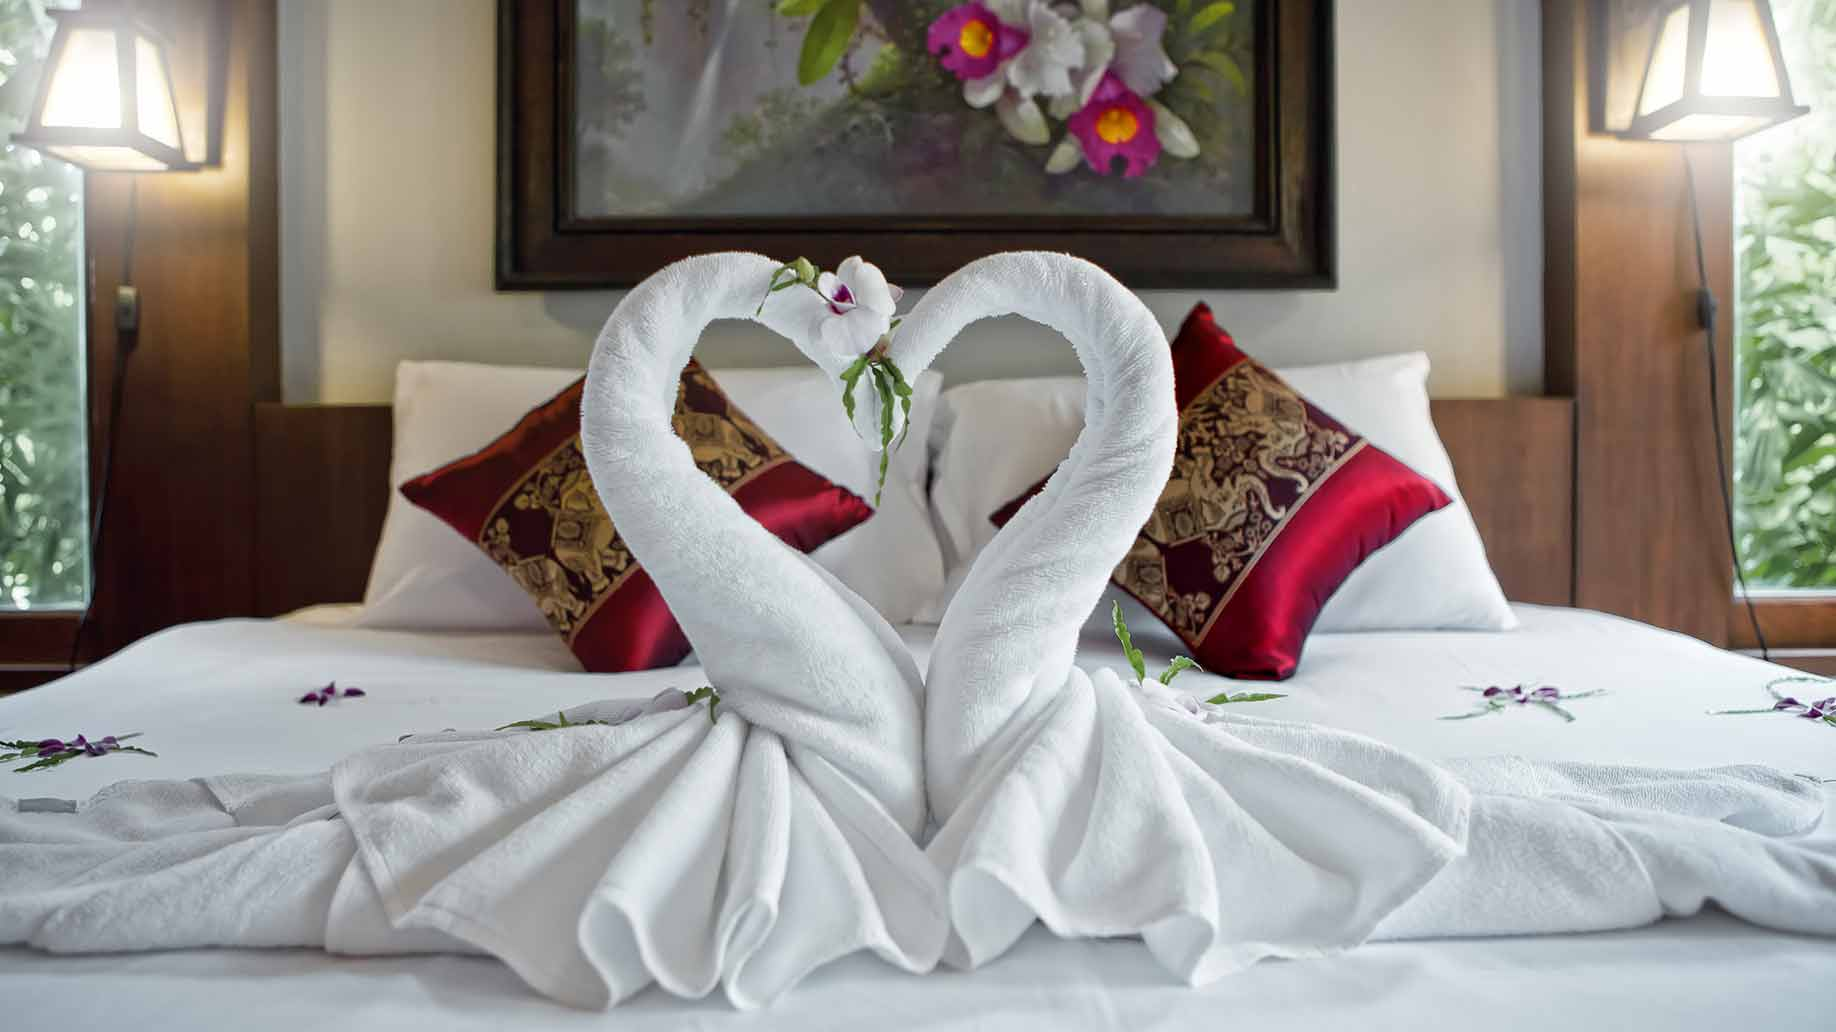 honeymoon suite towel swans